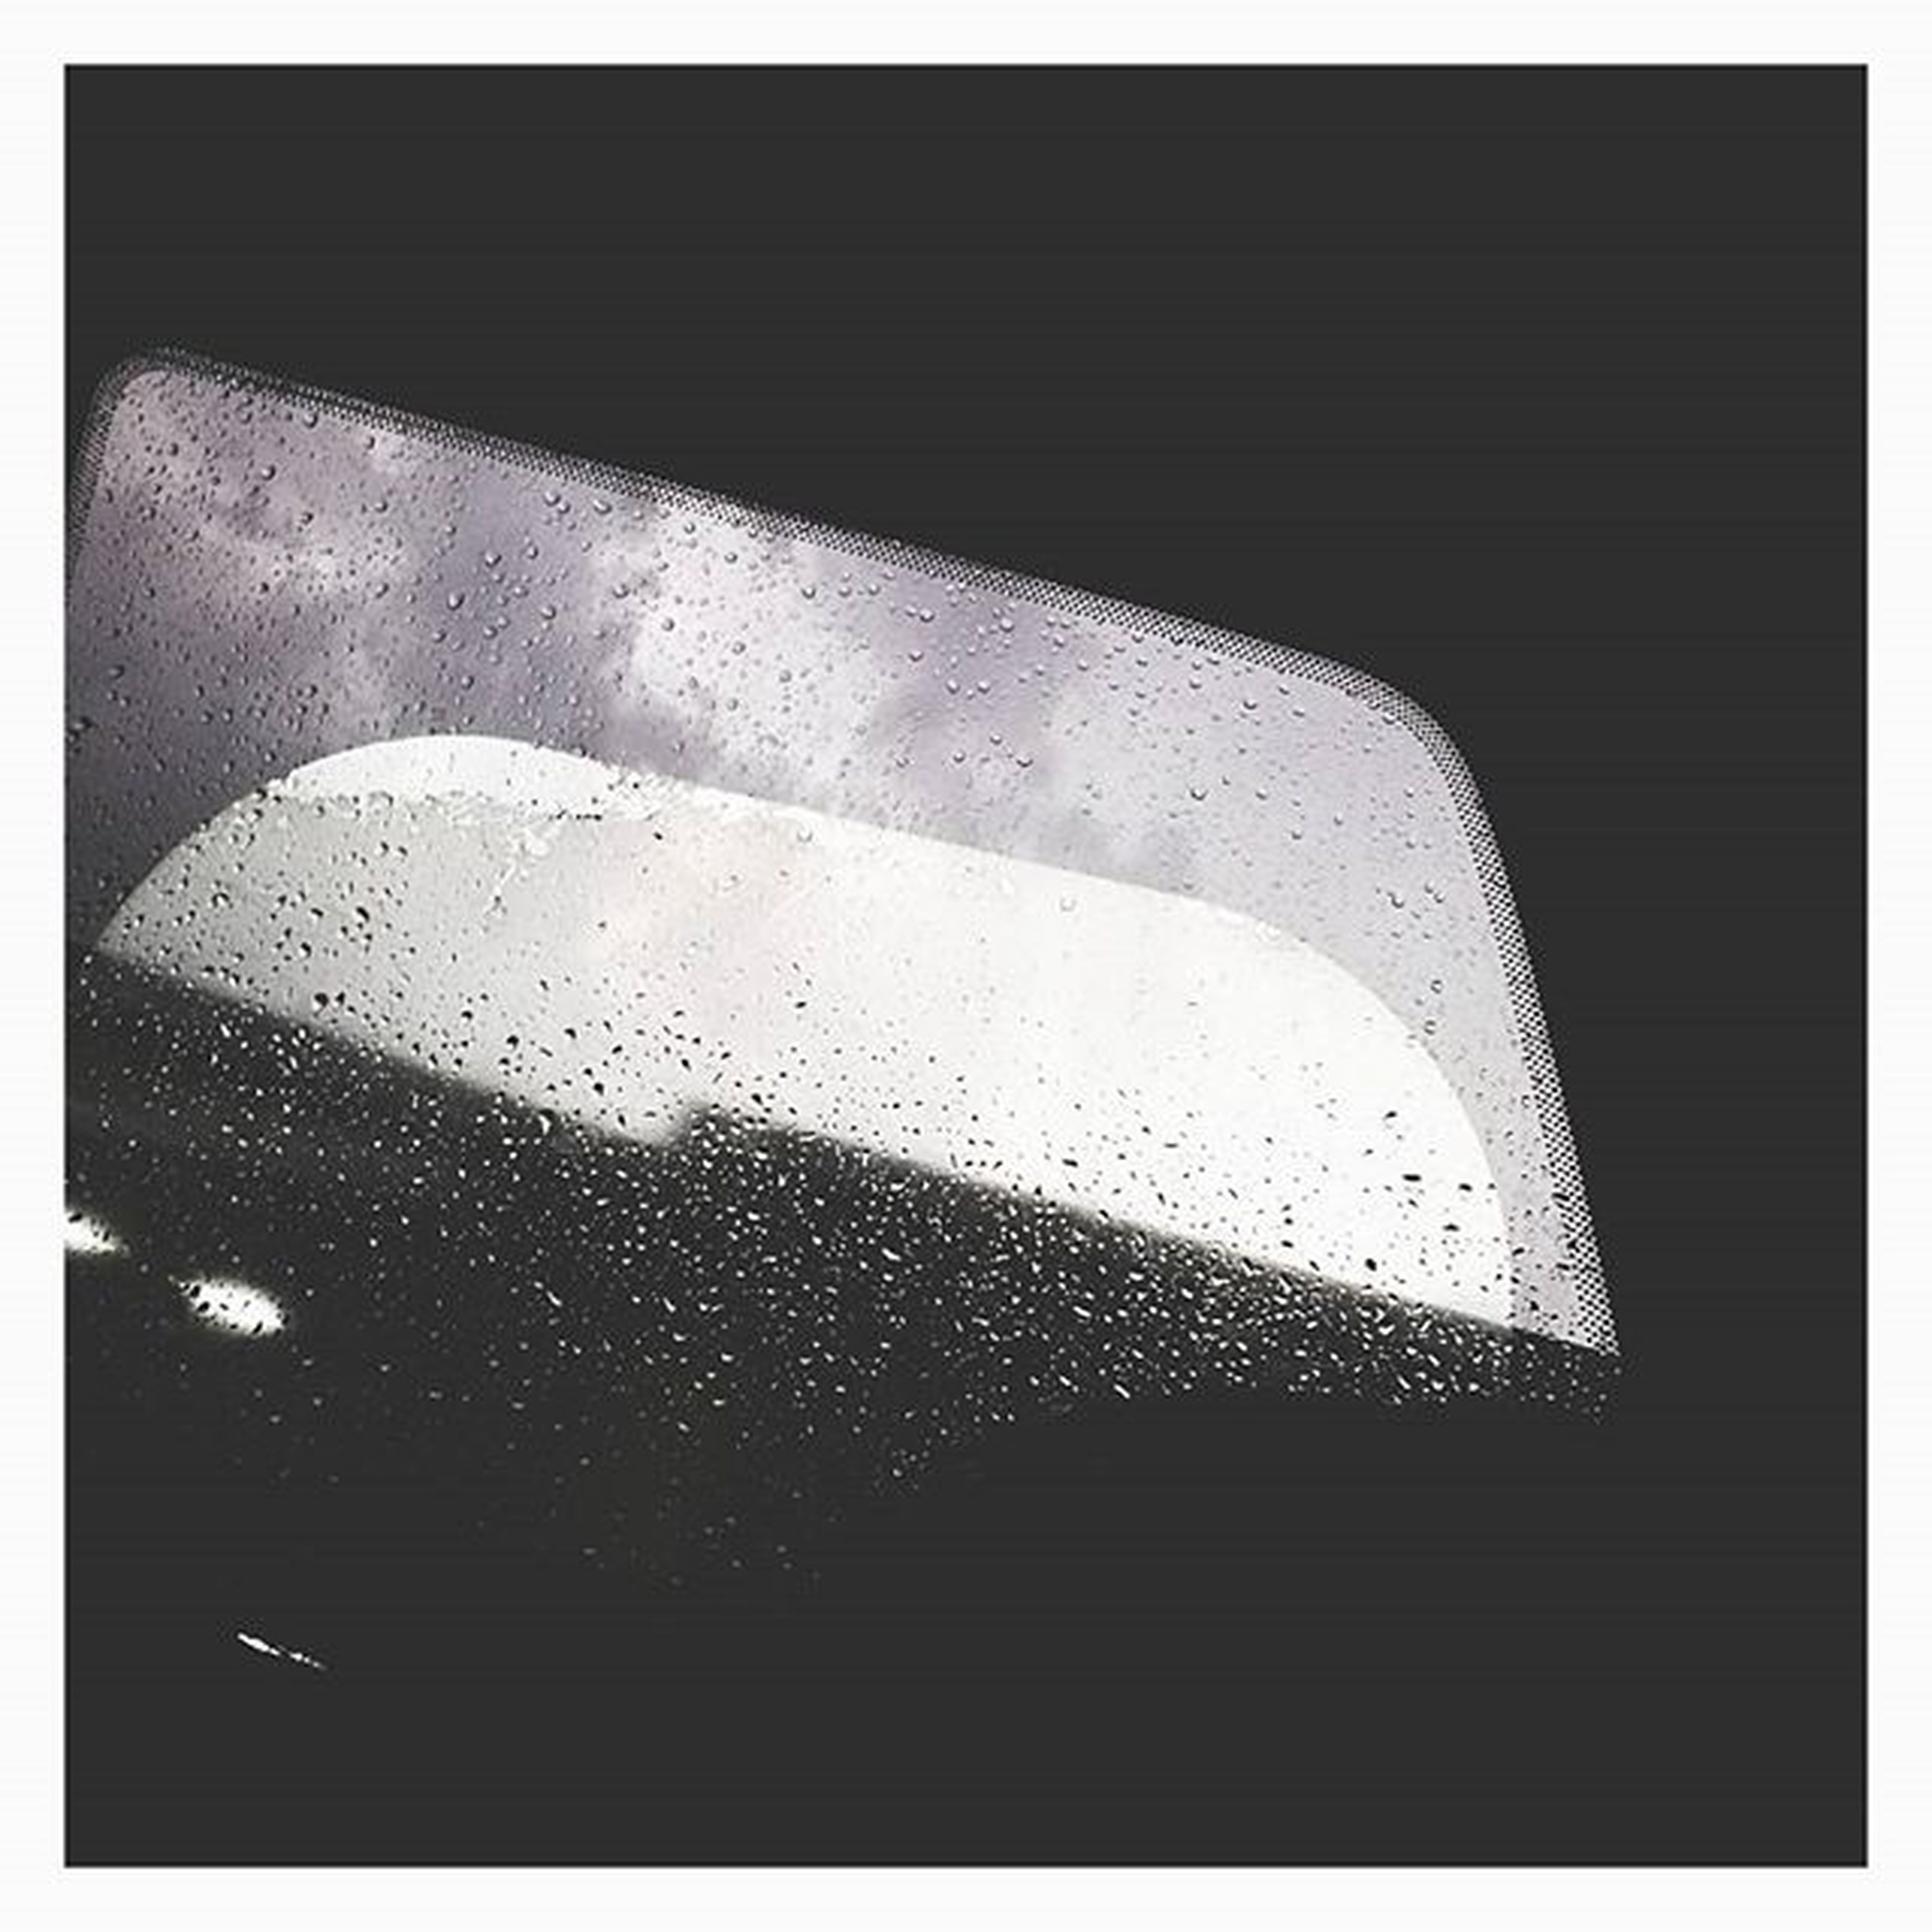 transfer print, window, indoors, glass - material, transparent, auto post production filter, transportation, glass, wet, drop, rain, car, mode of transport, vehicle interior, close-up, water, sky, land vehicle, looking through window, no people